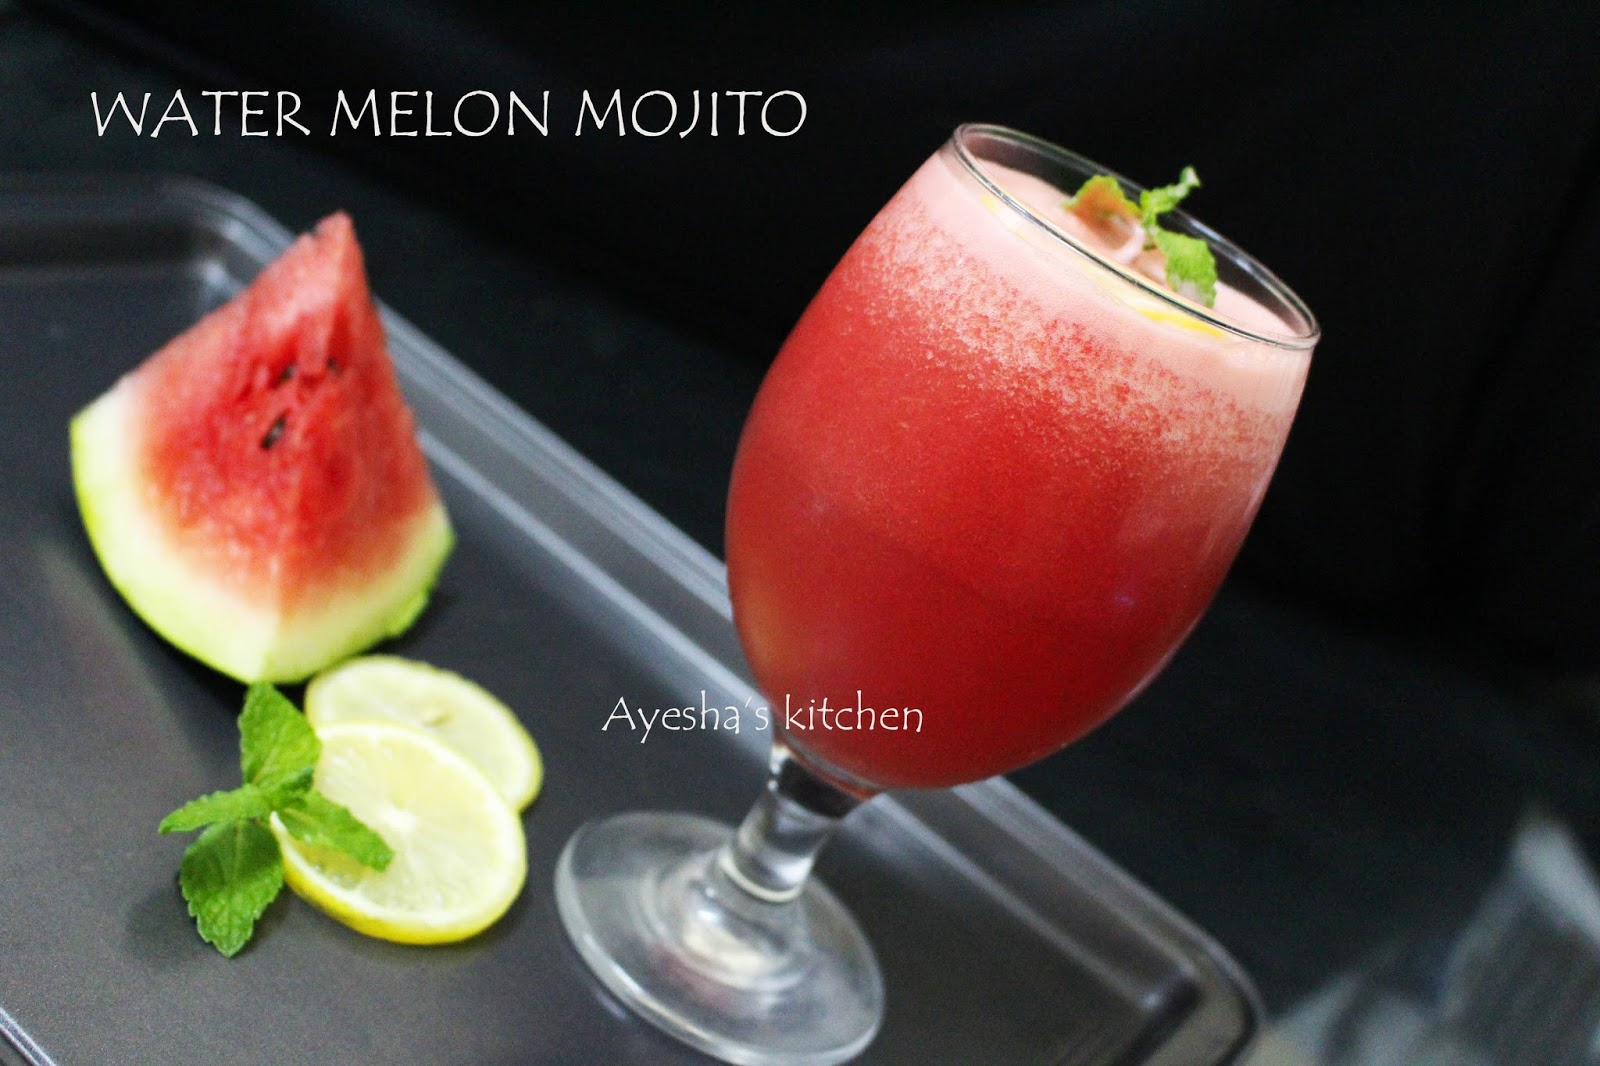 Water melon mojito mojito party drink welcome drink for Drink recipes without alcohol